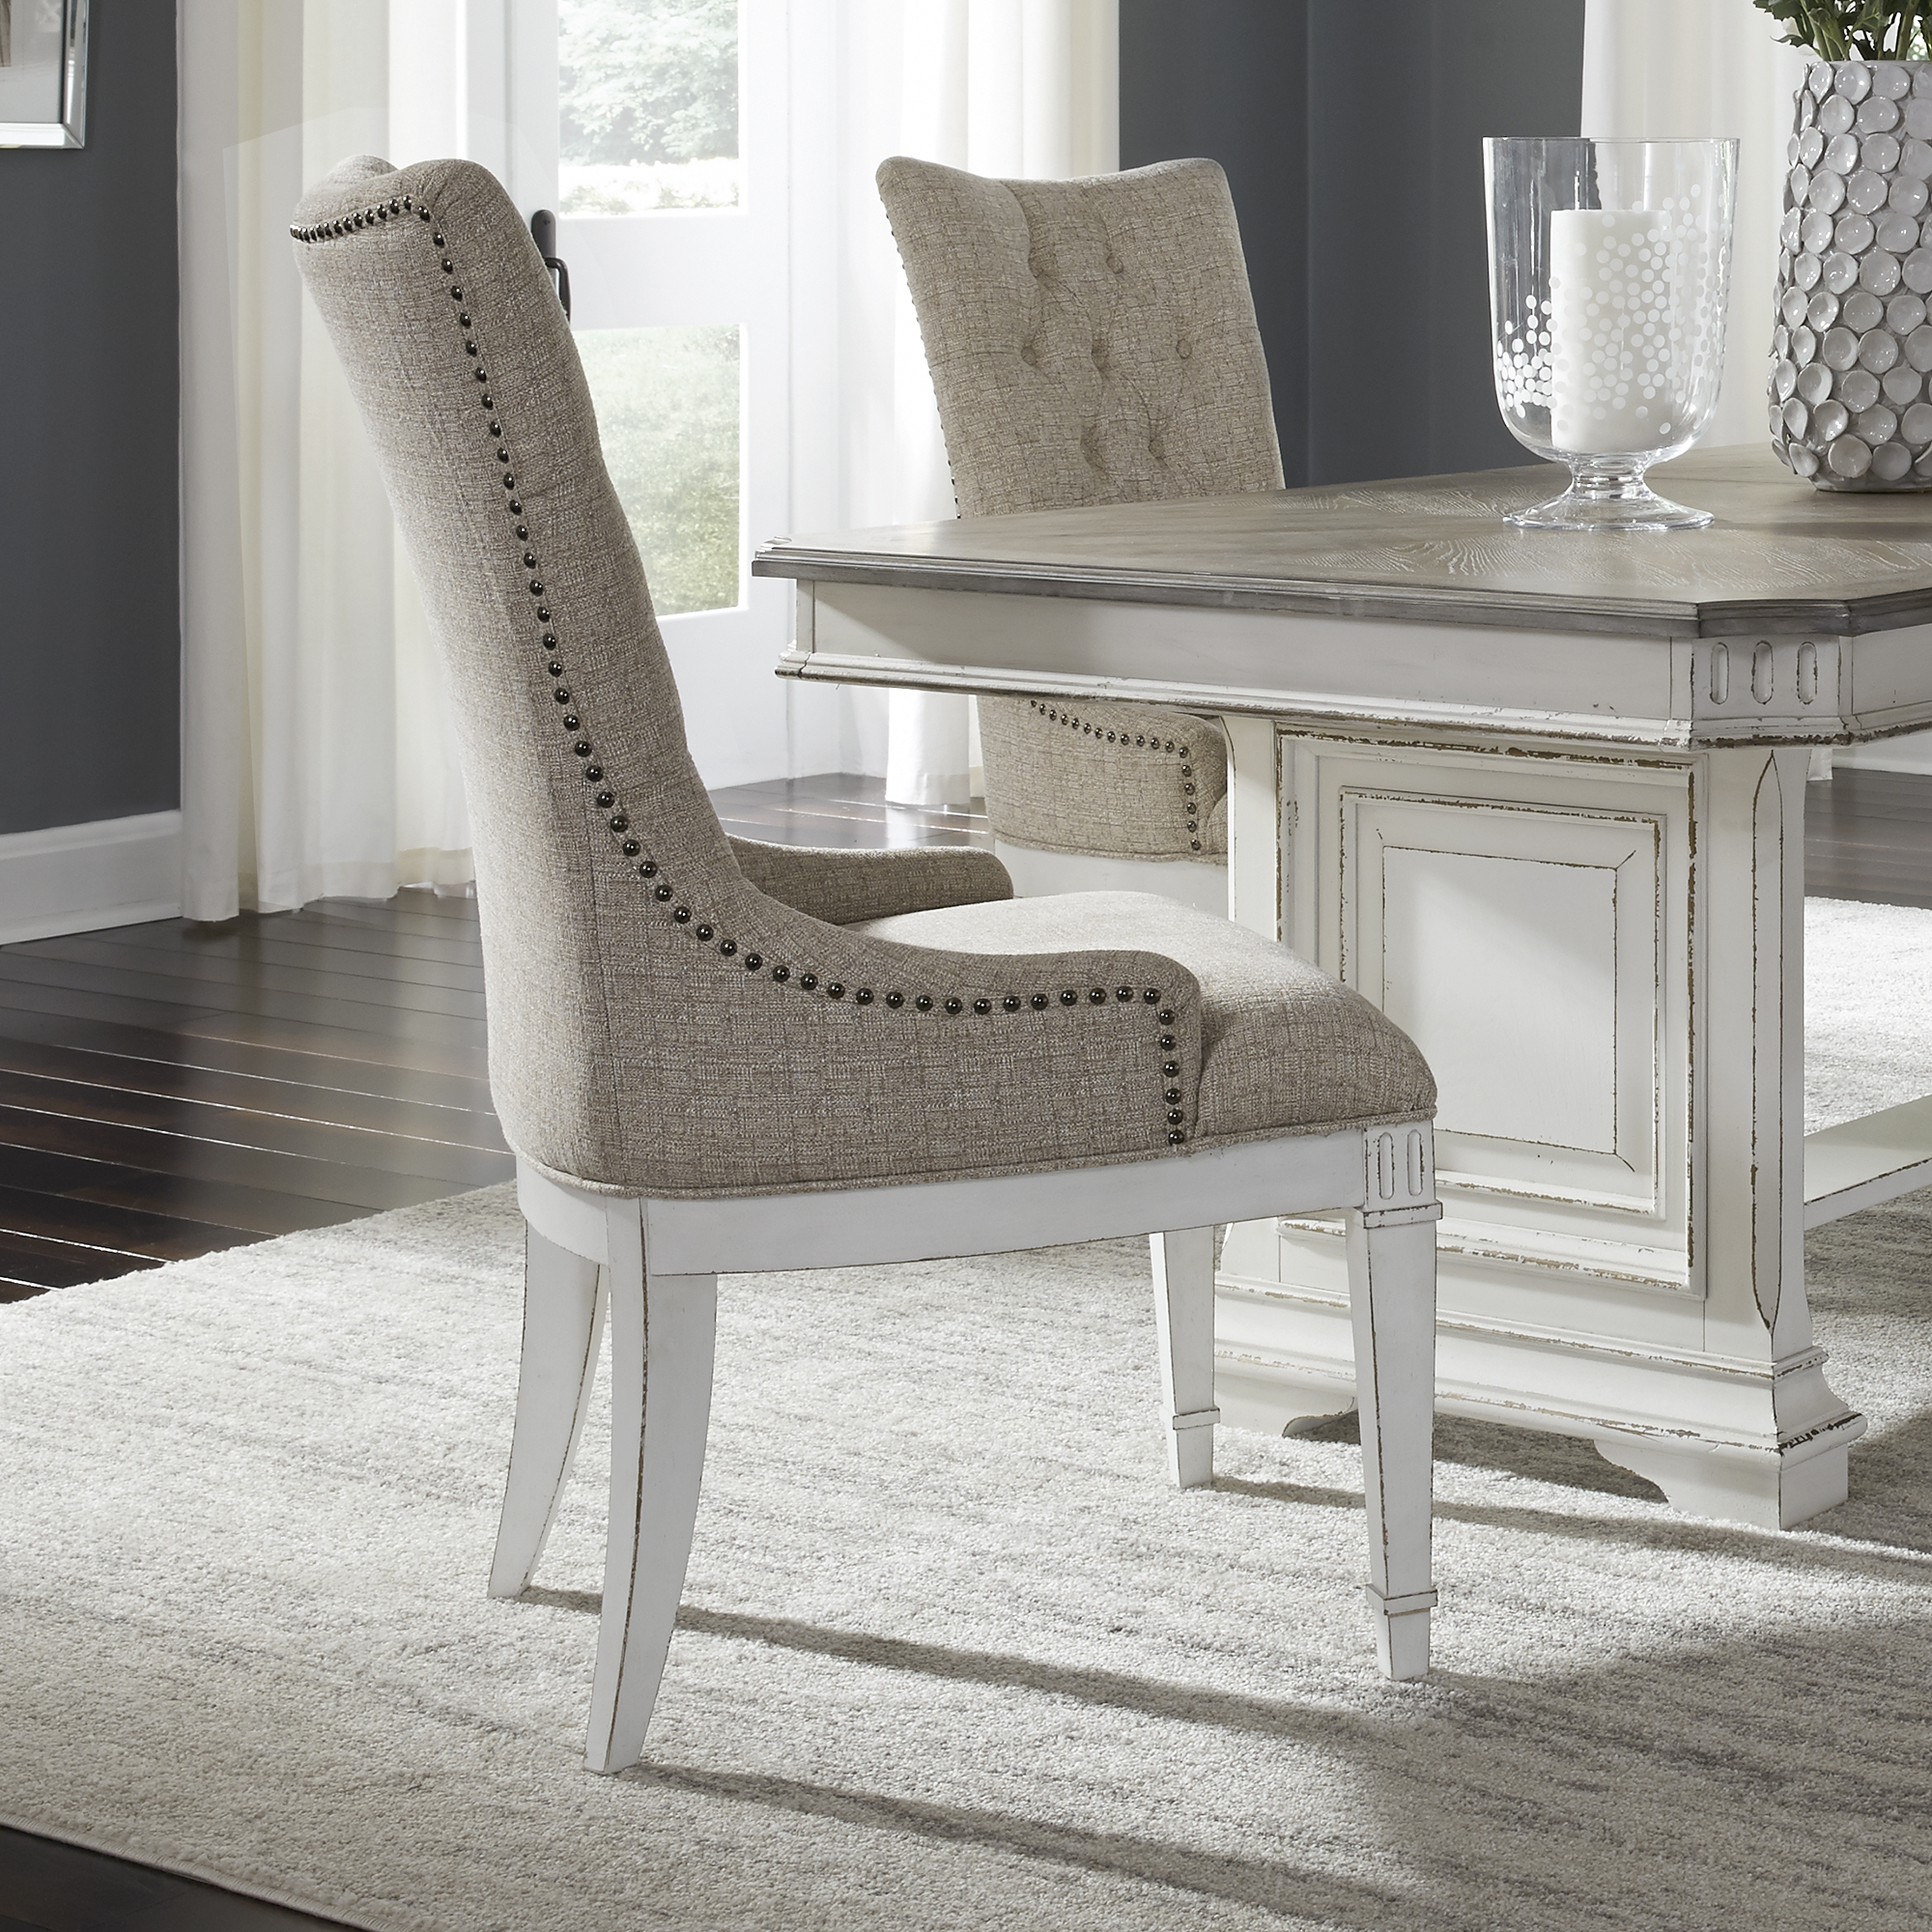 Dining Room Sets, Dining Room Furniture (View 22 of 25)